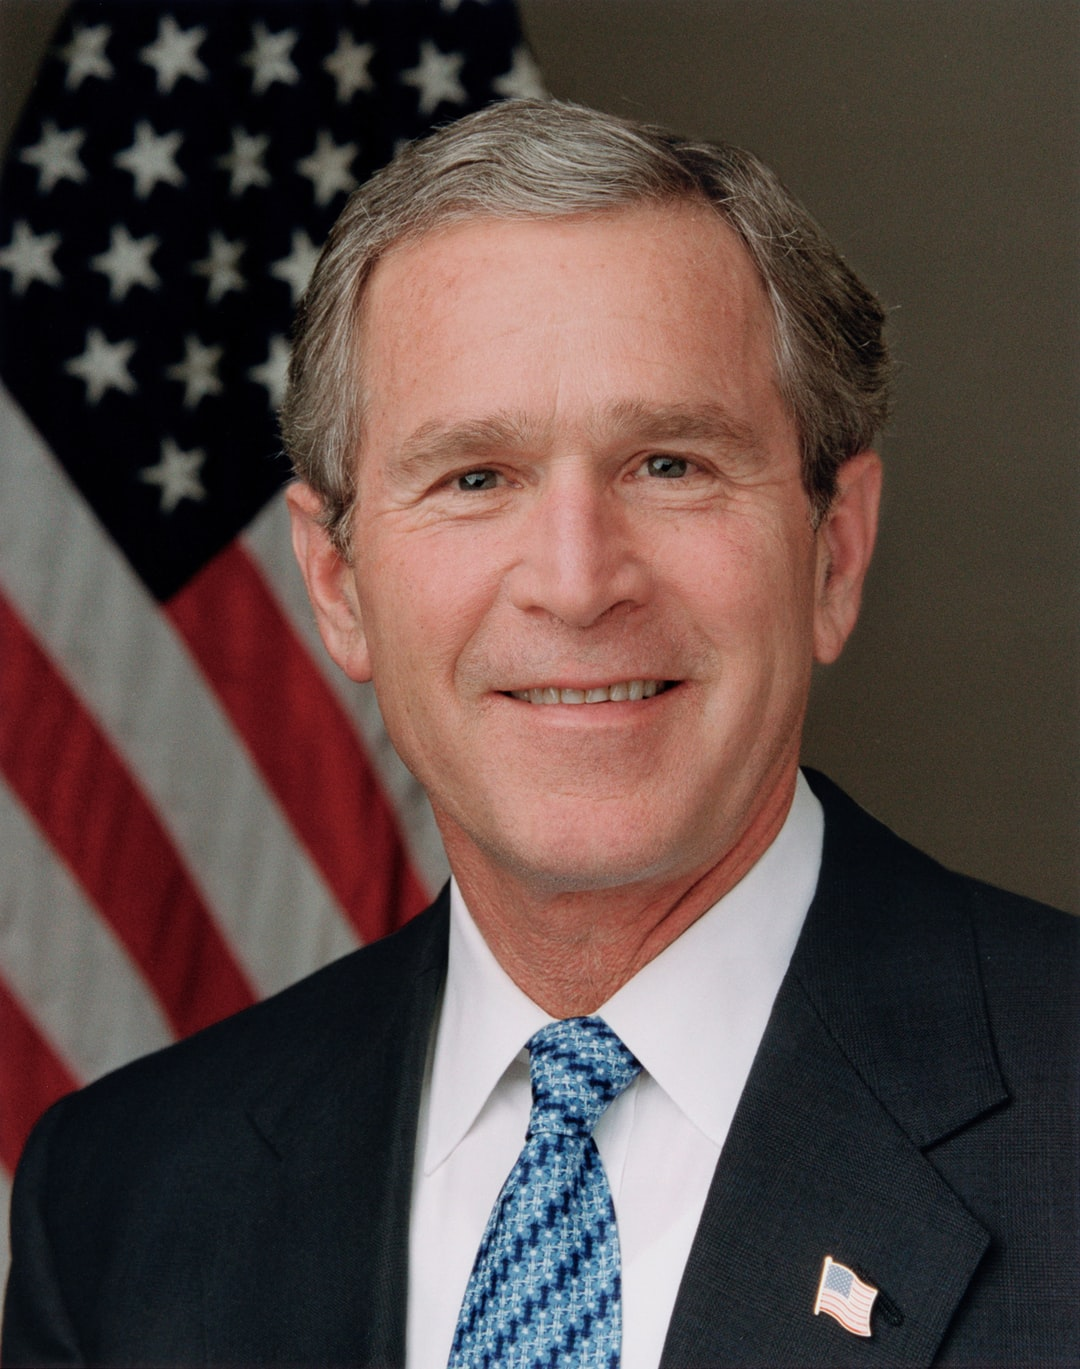 President Bush poses for his official portrait in the Roosevelt Room (blue tie). Digital photograph by photographer Eric Draper, [2003]. Official portrait of President George W. Bush, courtesy of the George Bush Presidental Library. 